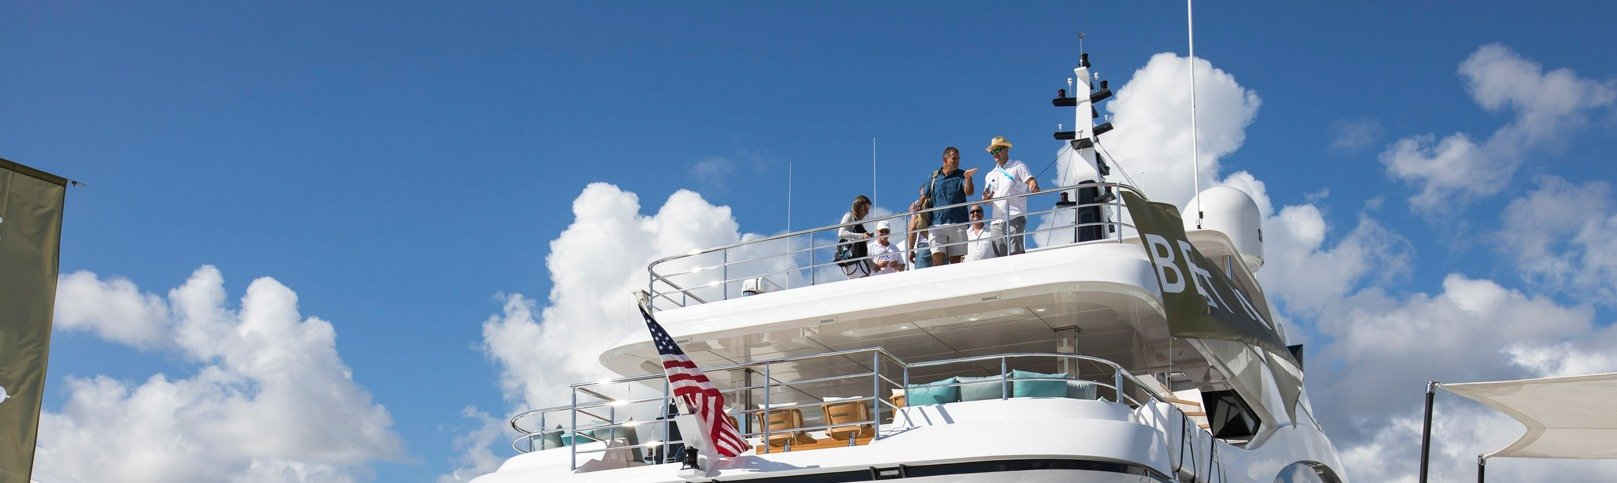 GUlf Craft at Fort Lauderdale International Boat Show 2019 Day 3-4 (5)